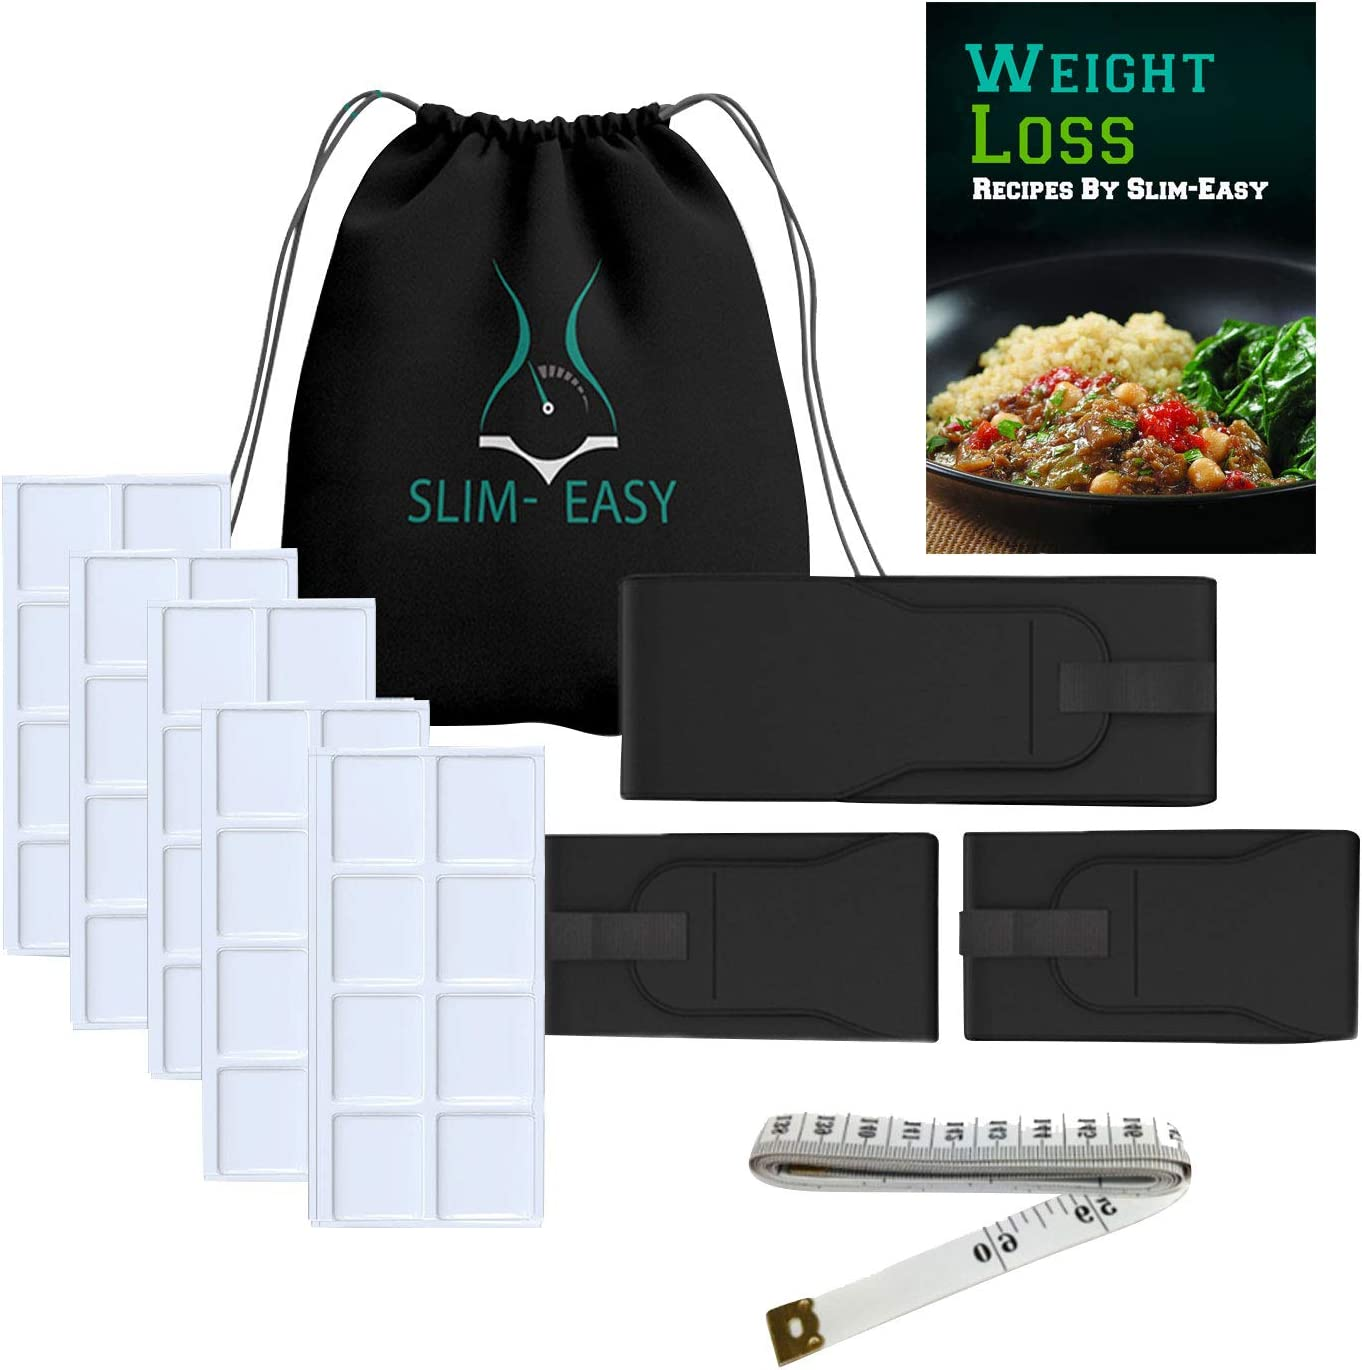 Slim-Easy - Weight Loss Kit | Fat Freezing System - Cold Body Sculpting Belts (Waist, Arms, and Leg Wraps)